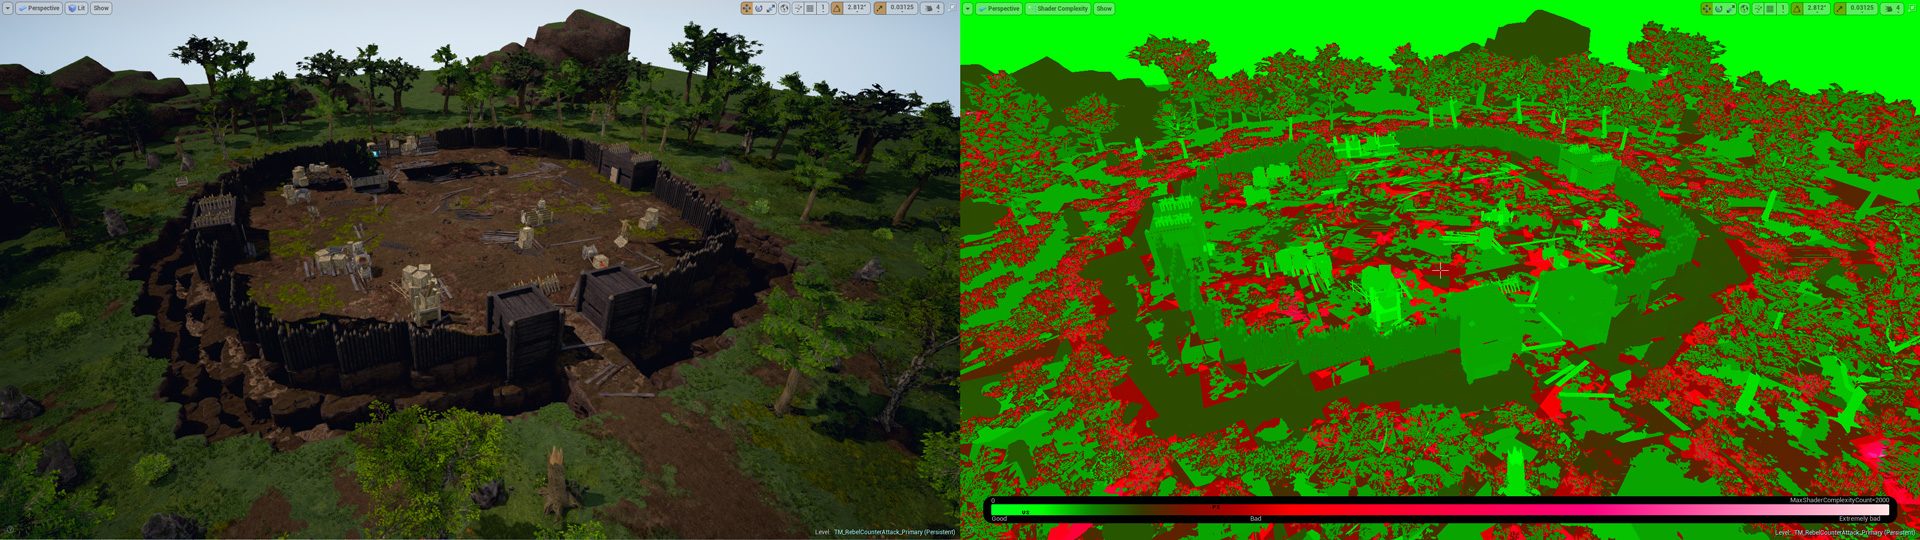 Fort map comparison, editor and shader view.